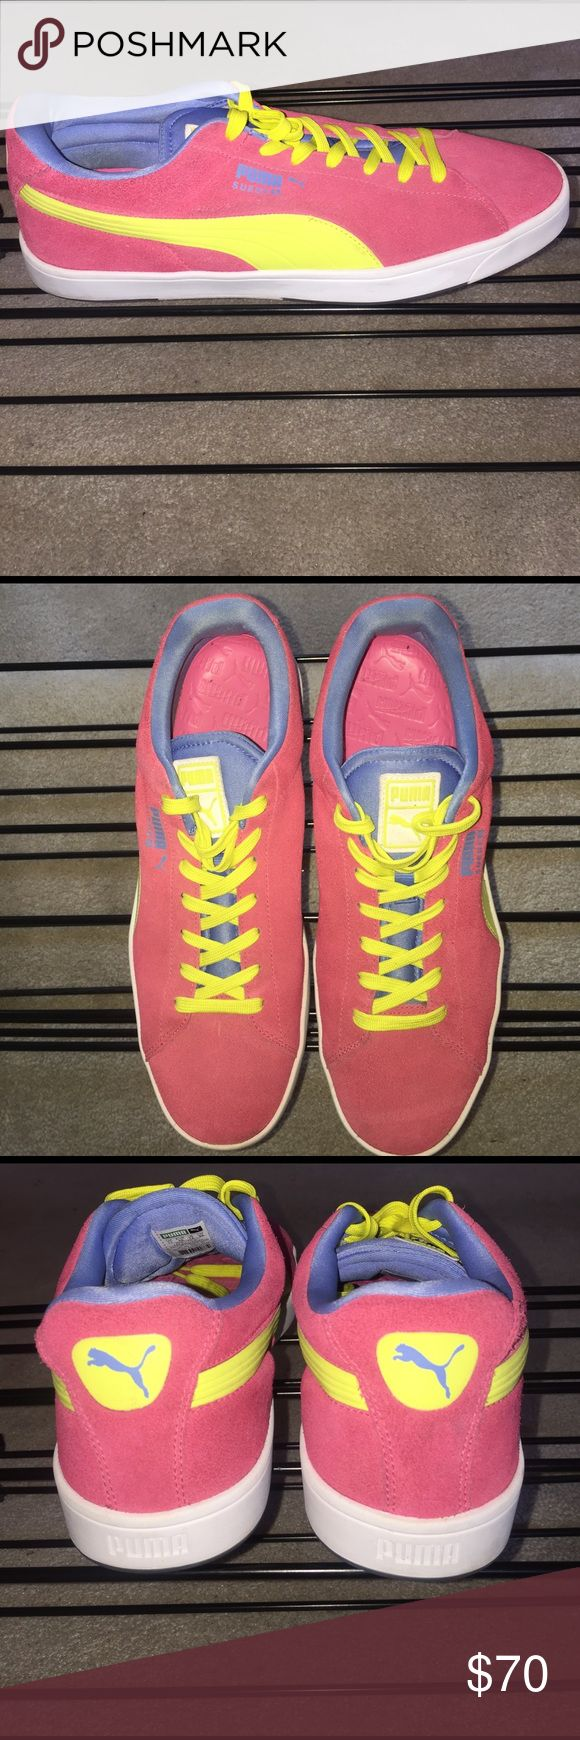 🔥Mens Puma Retros Gently Loved Puma Retros Suede Pink and Neon yellow with blue inner lining worn several times if that and in excellent condition.. Will ship today📦📬🎁💃🏽 Puma Shoes Sneakers